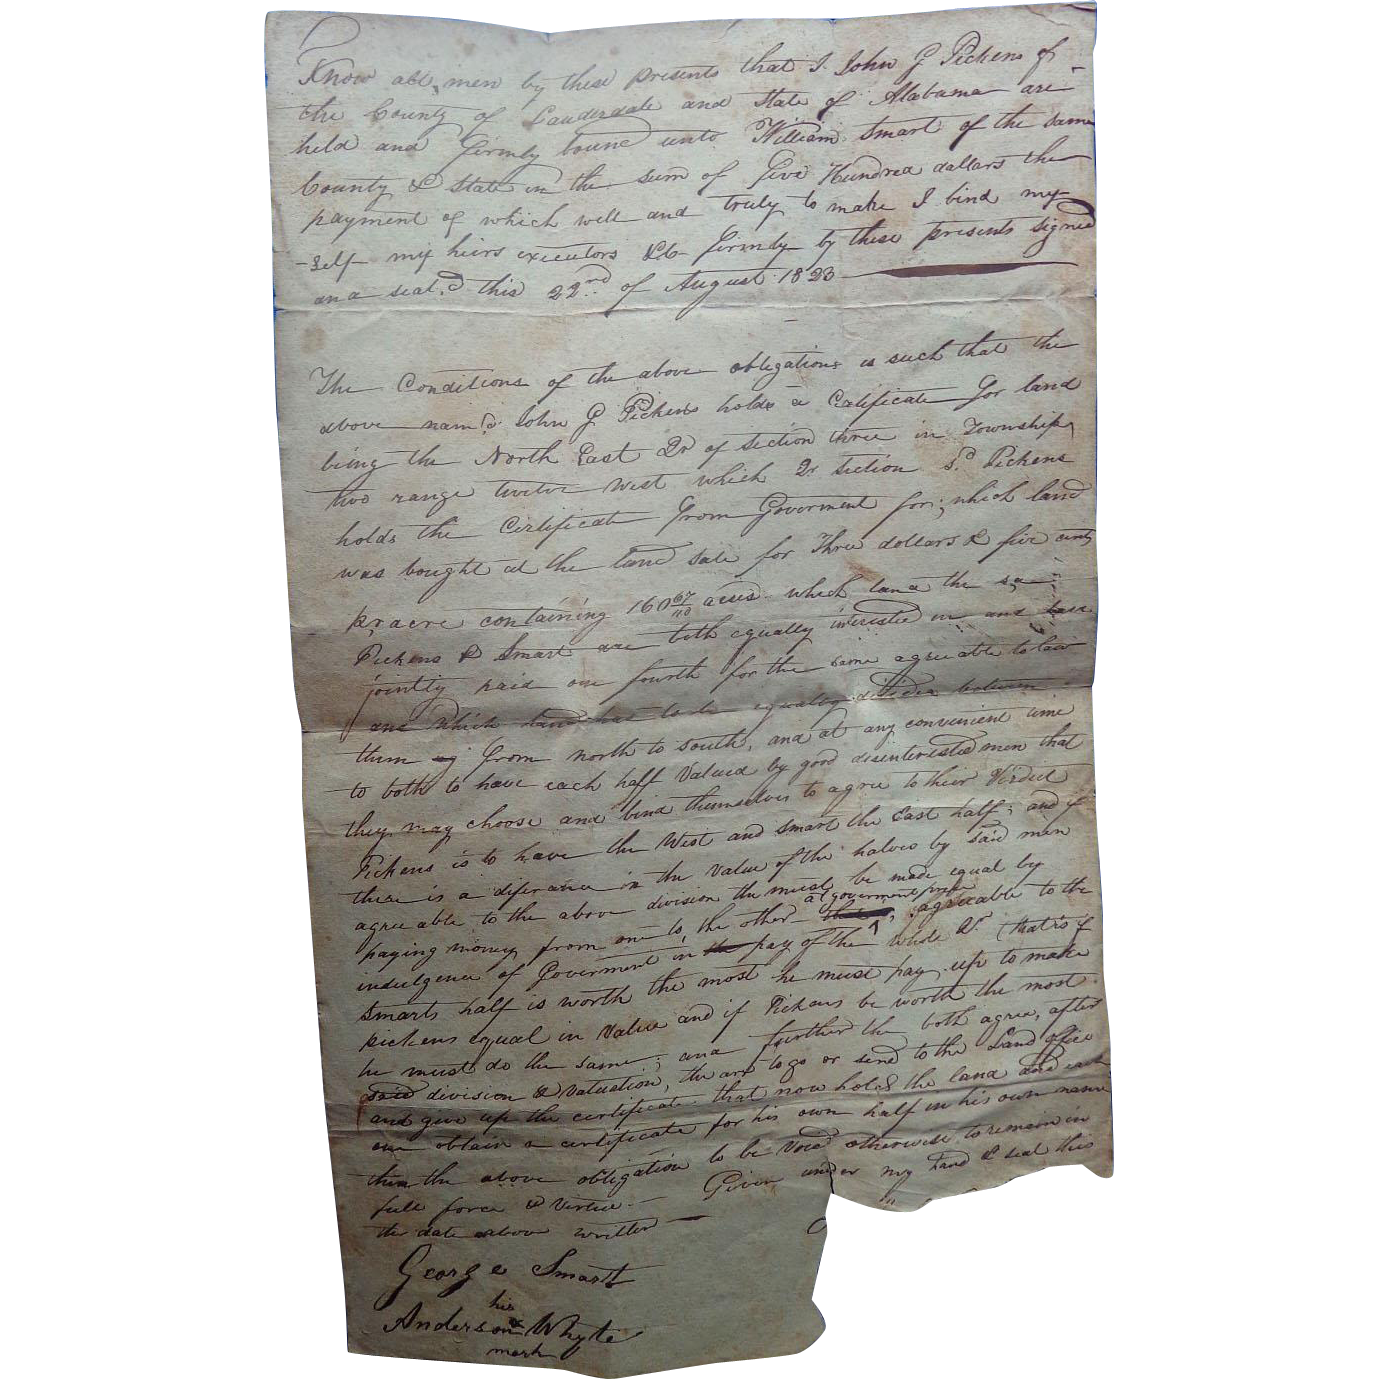 Lauderdale County,Alabama Land Deed John G.Pickens William Smart August 22 1823